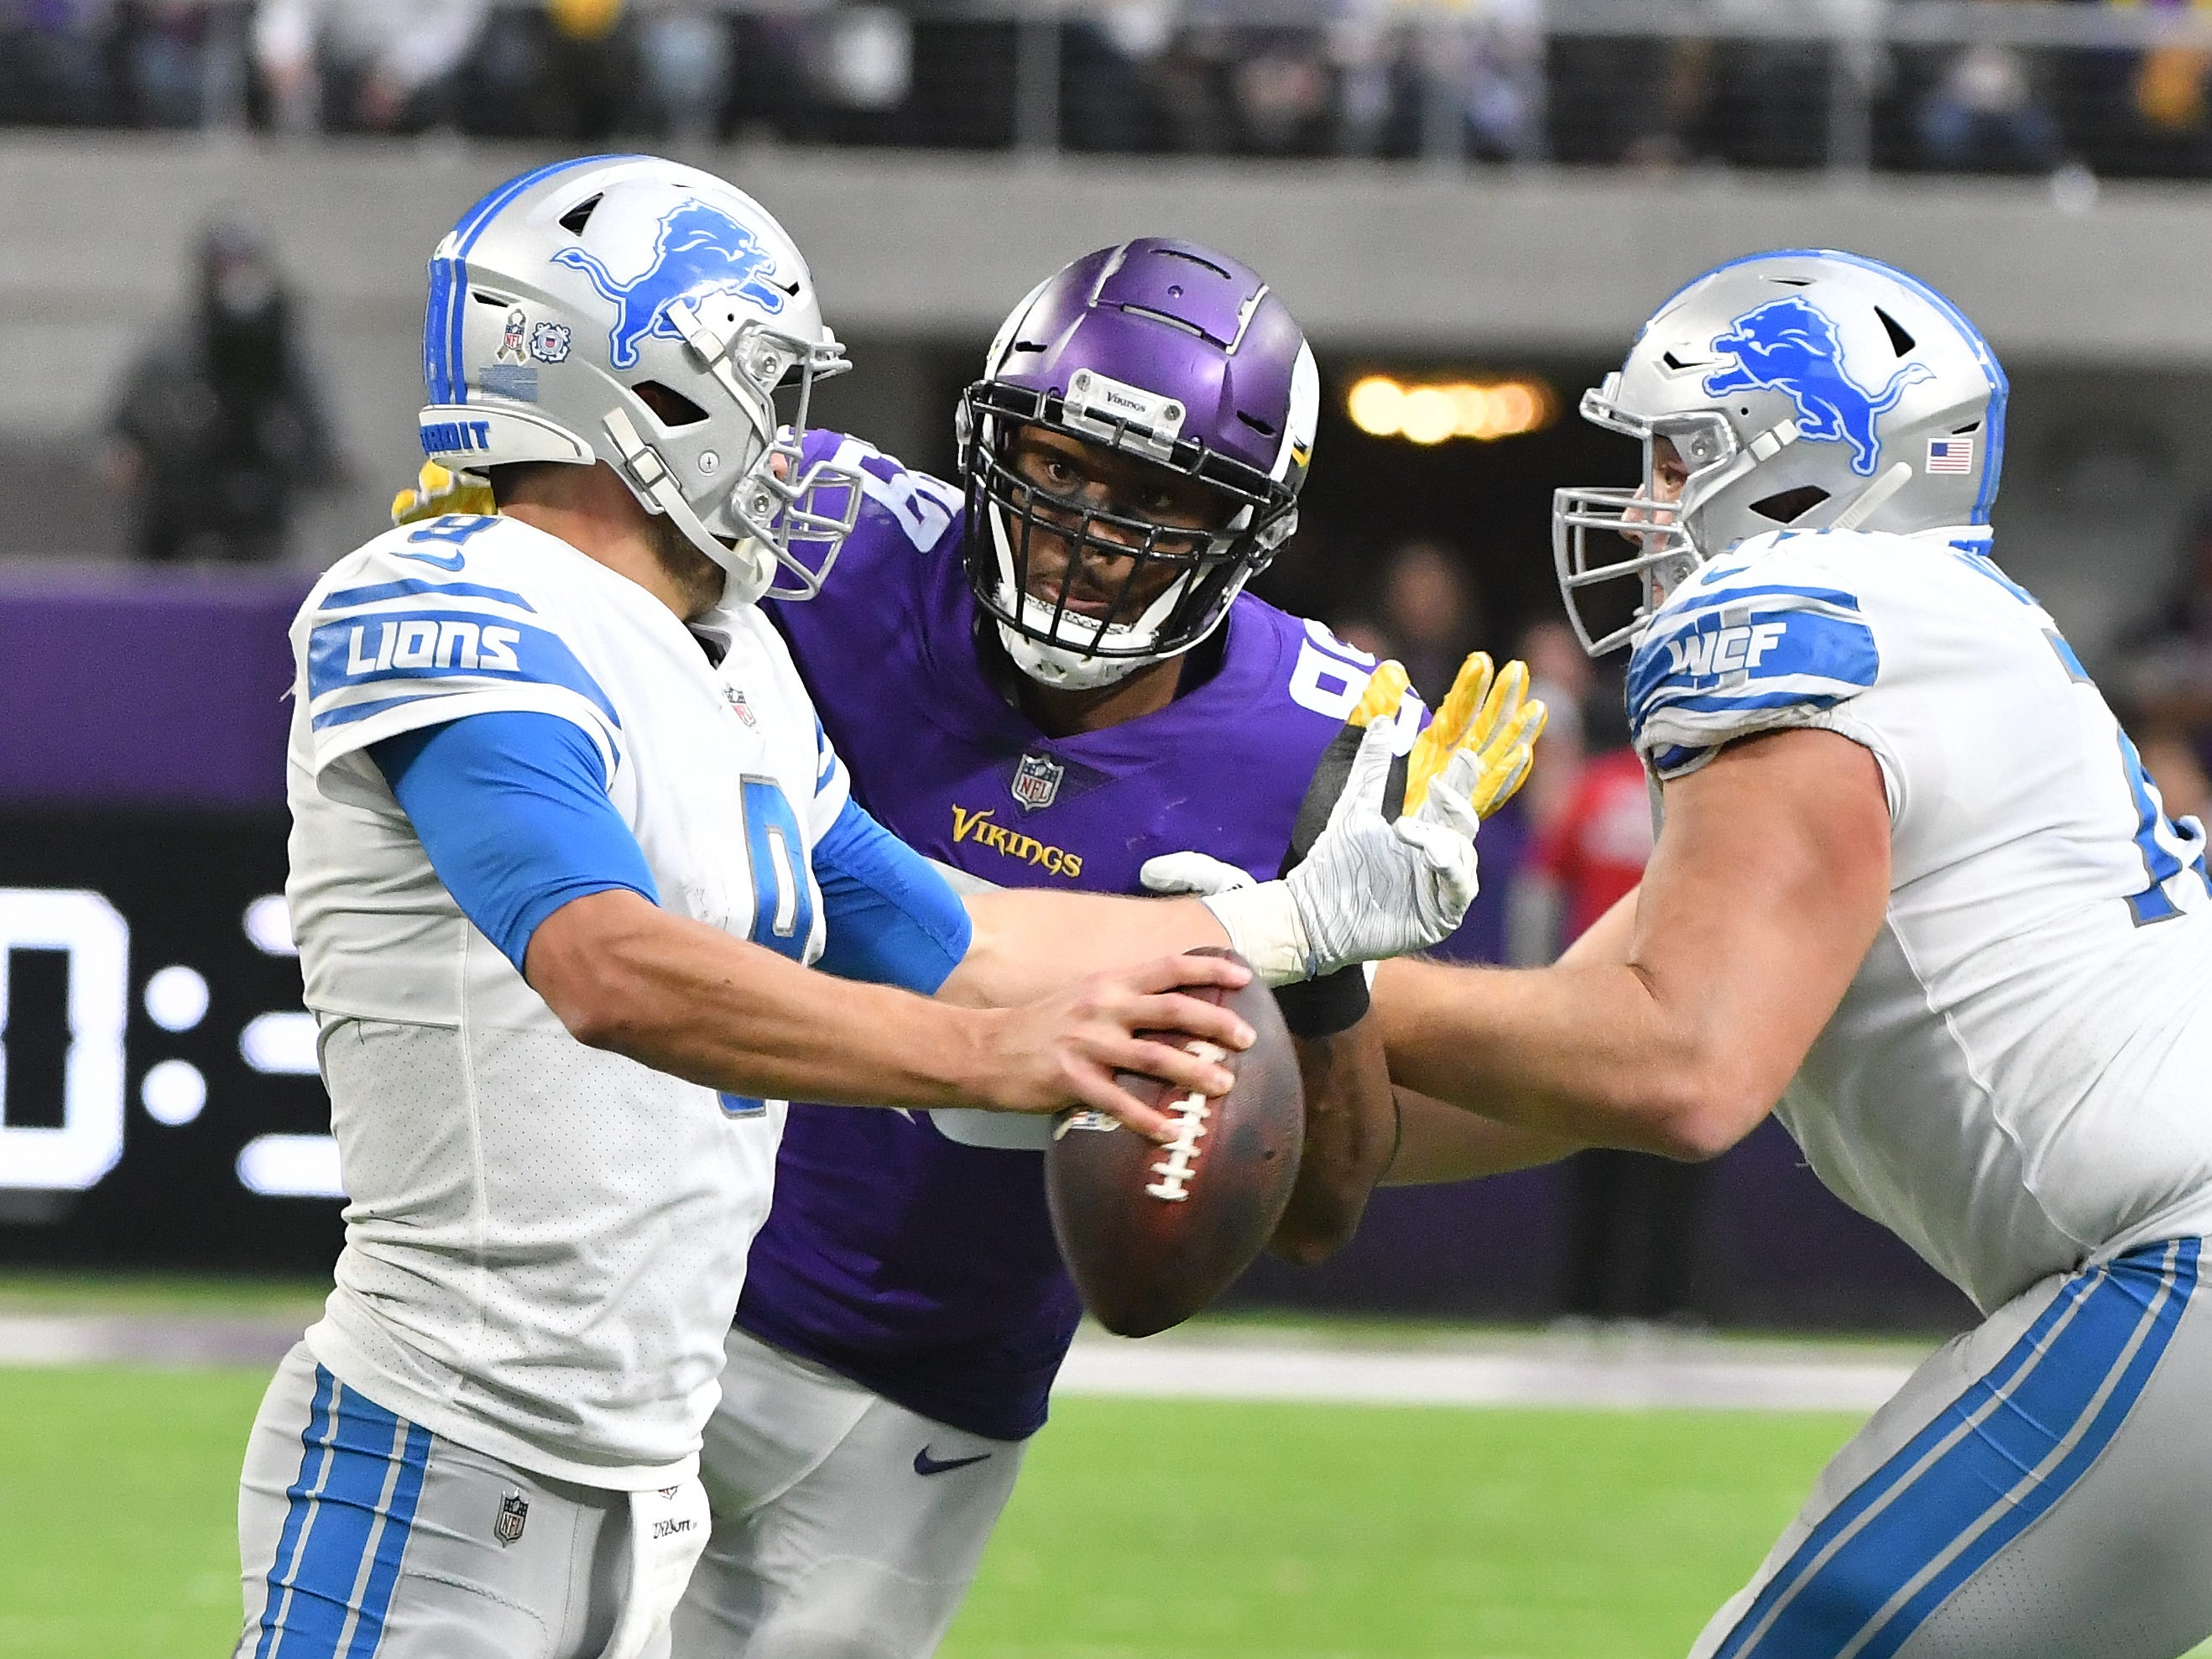 Vikings' Danielle Hunter eyes another sack of Lions quarterback Matthew Stafford, with Frank Ragnow defending, but only forces him out of the pocket, where his teammate Everson Griffen is waiting to bring down Stafford in the third quarter.